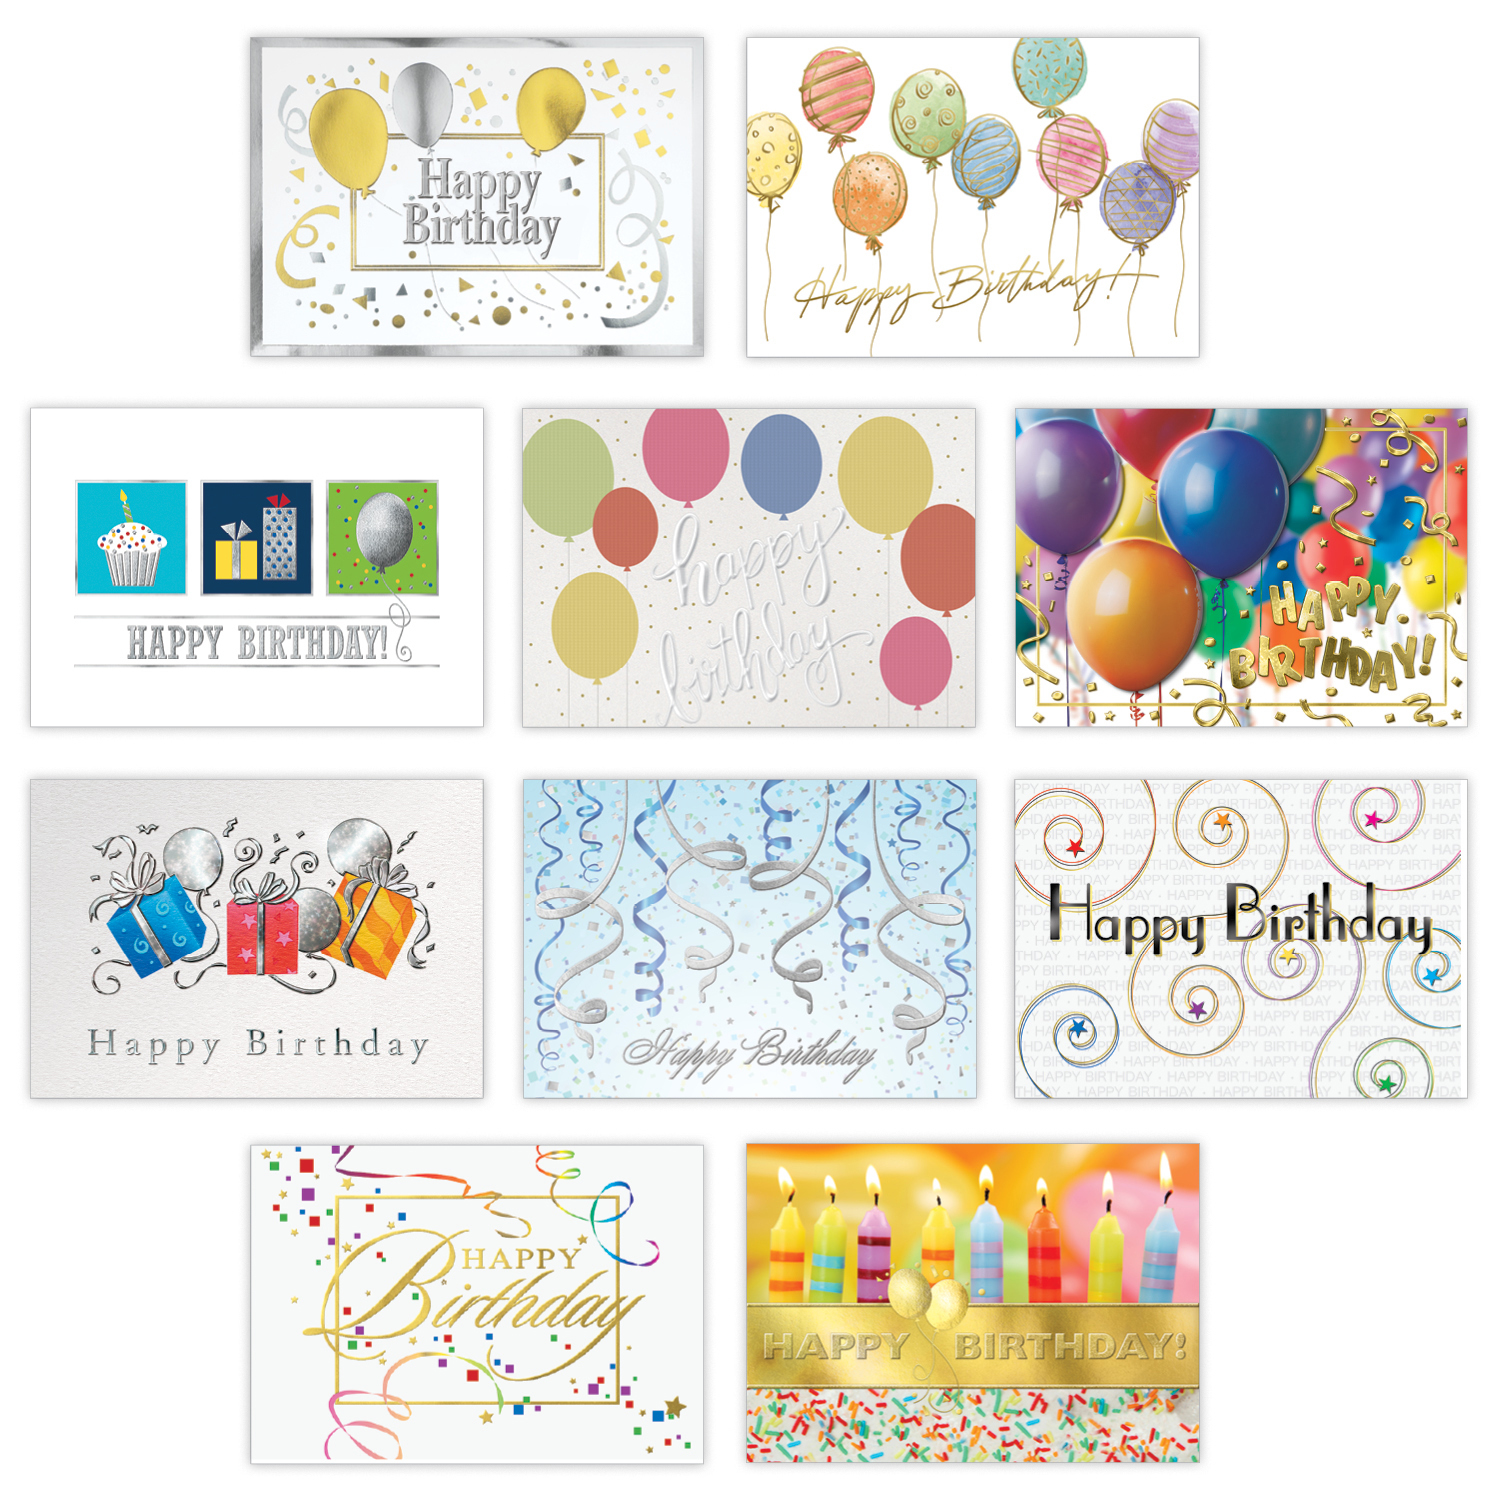 Picture of Personalized Balloons and Streamers Birthday Card Assortment